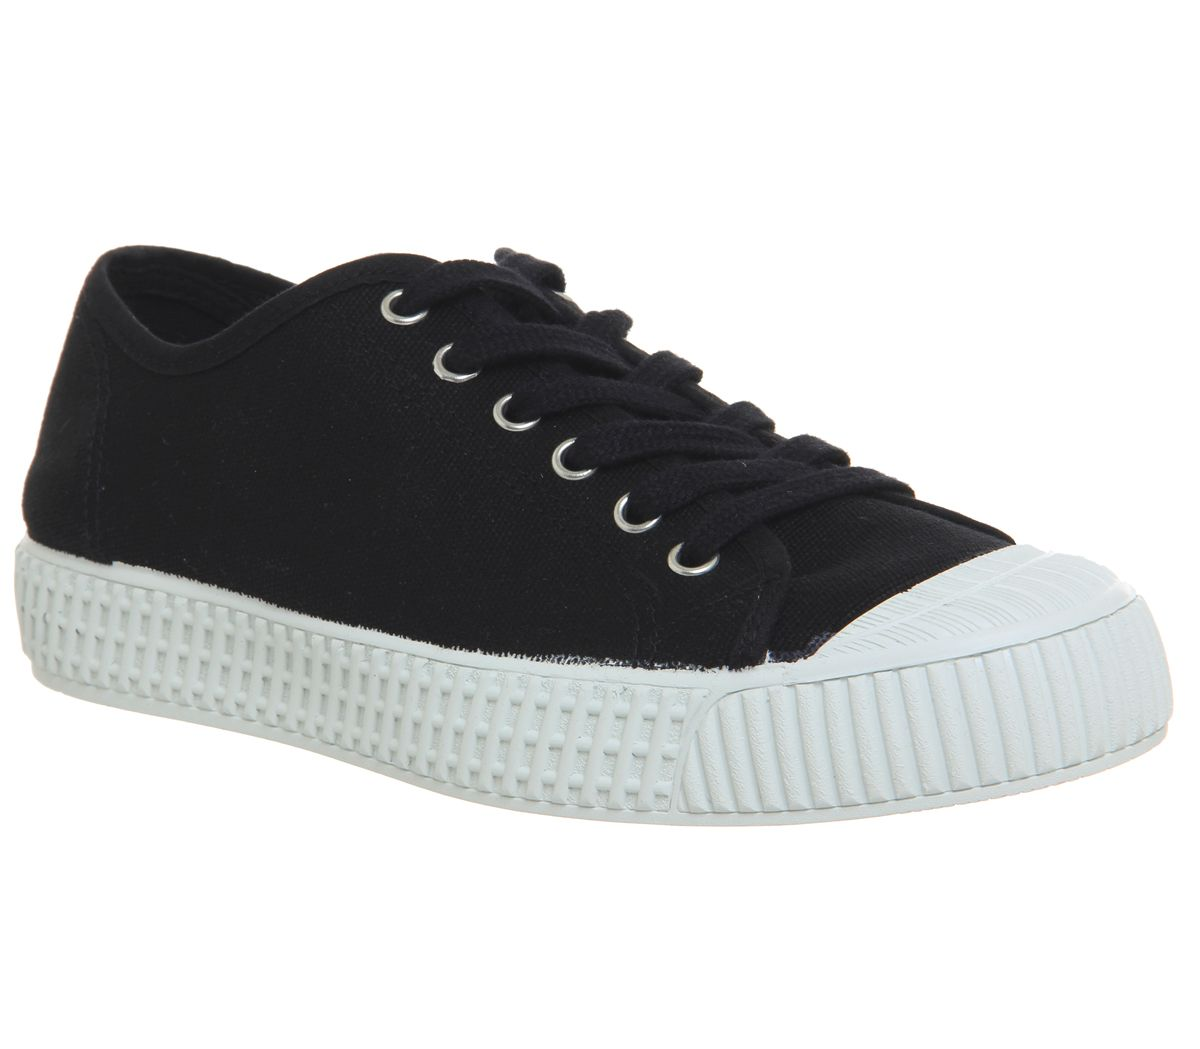 Office Frangepane Canvas Trainers, Black